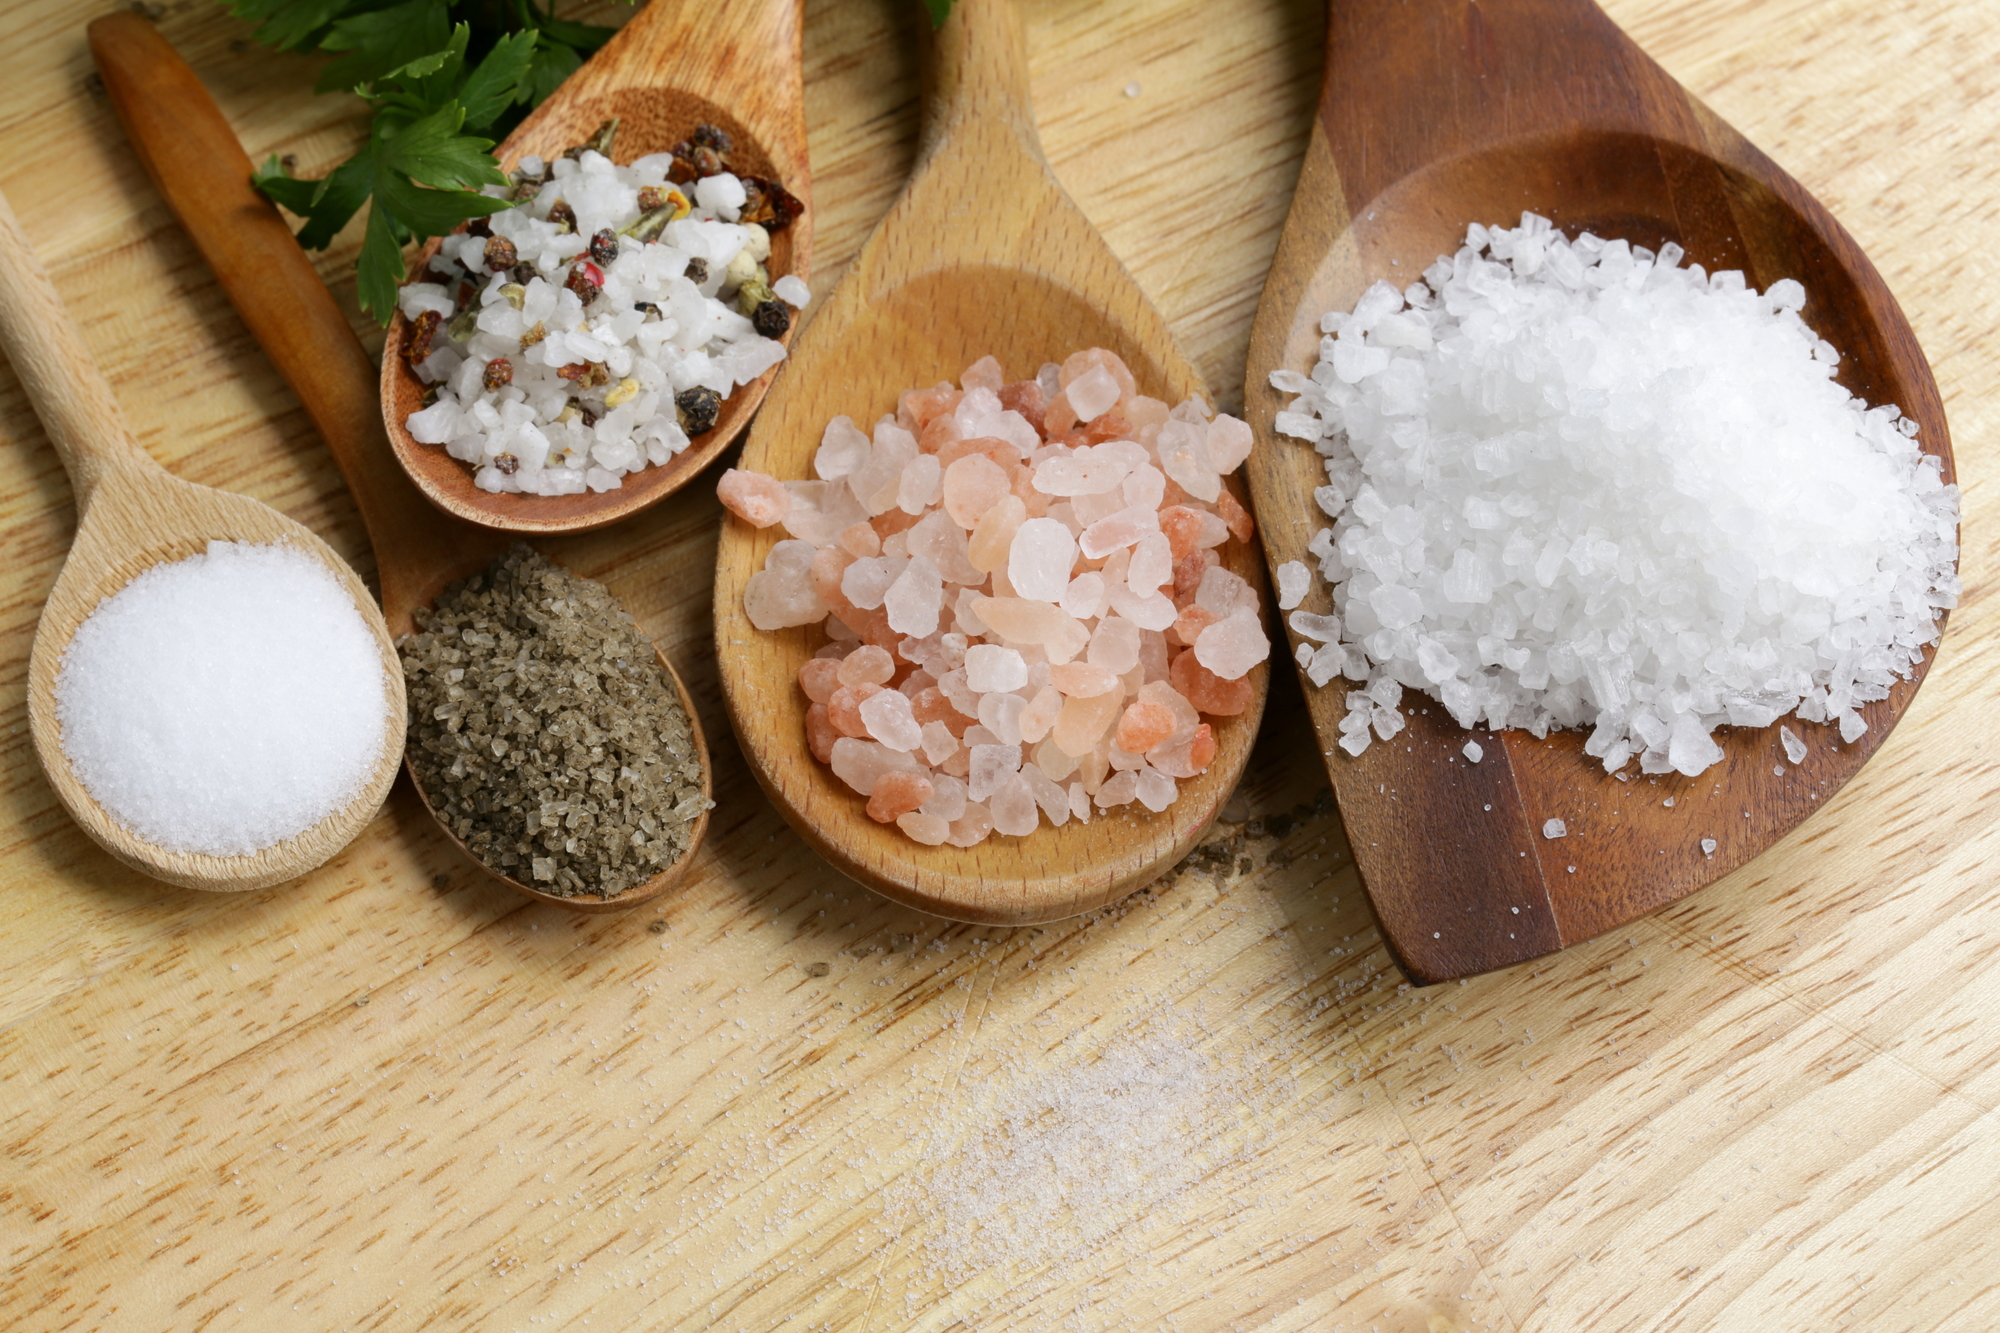 Types of Salts and Their Benefits